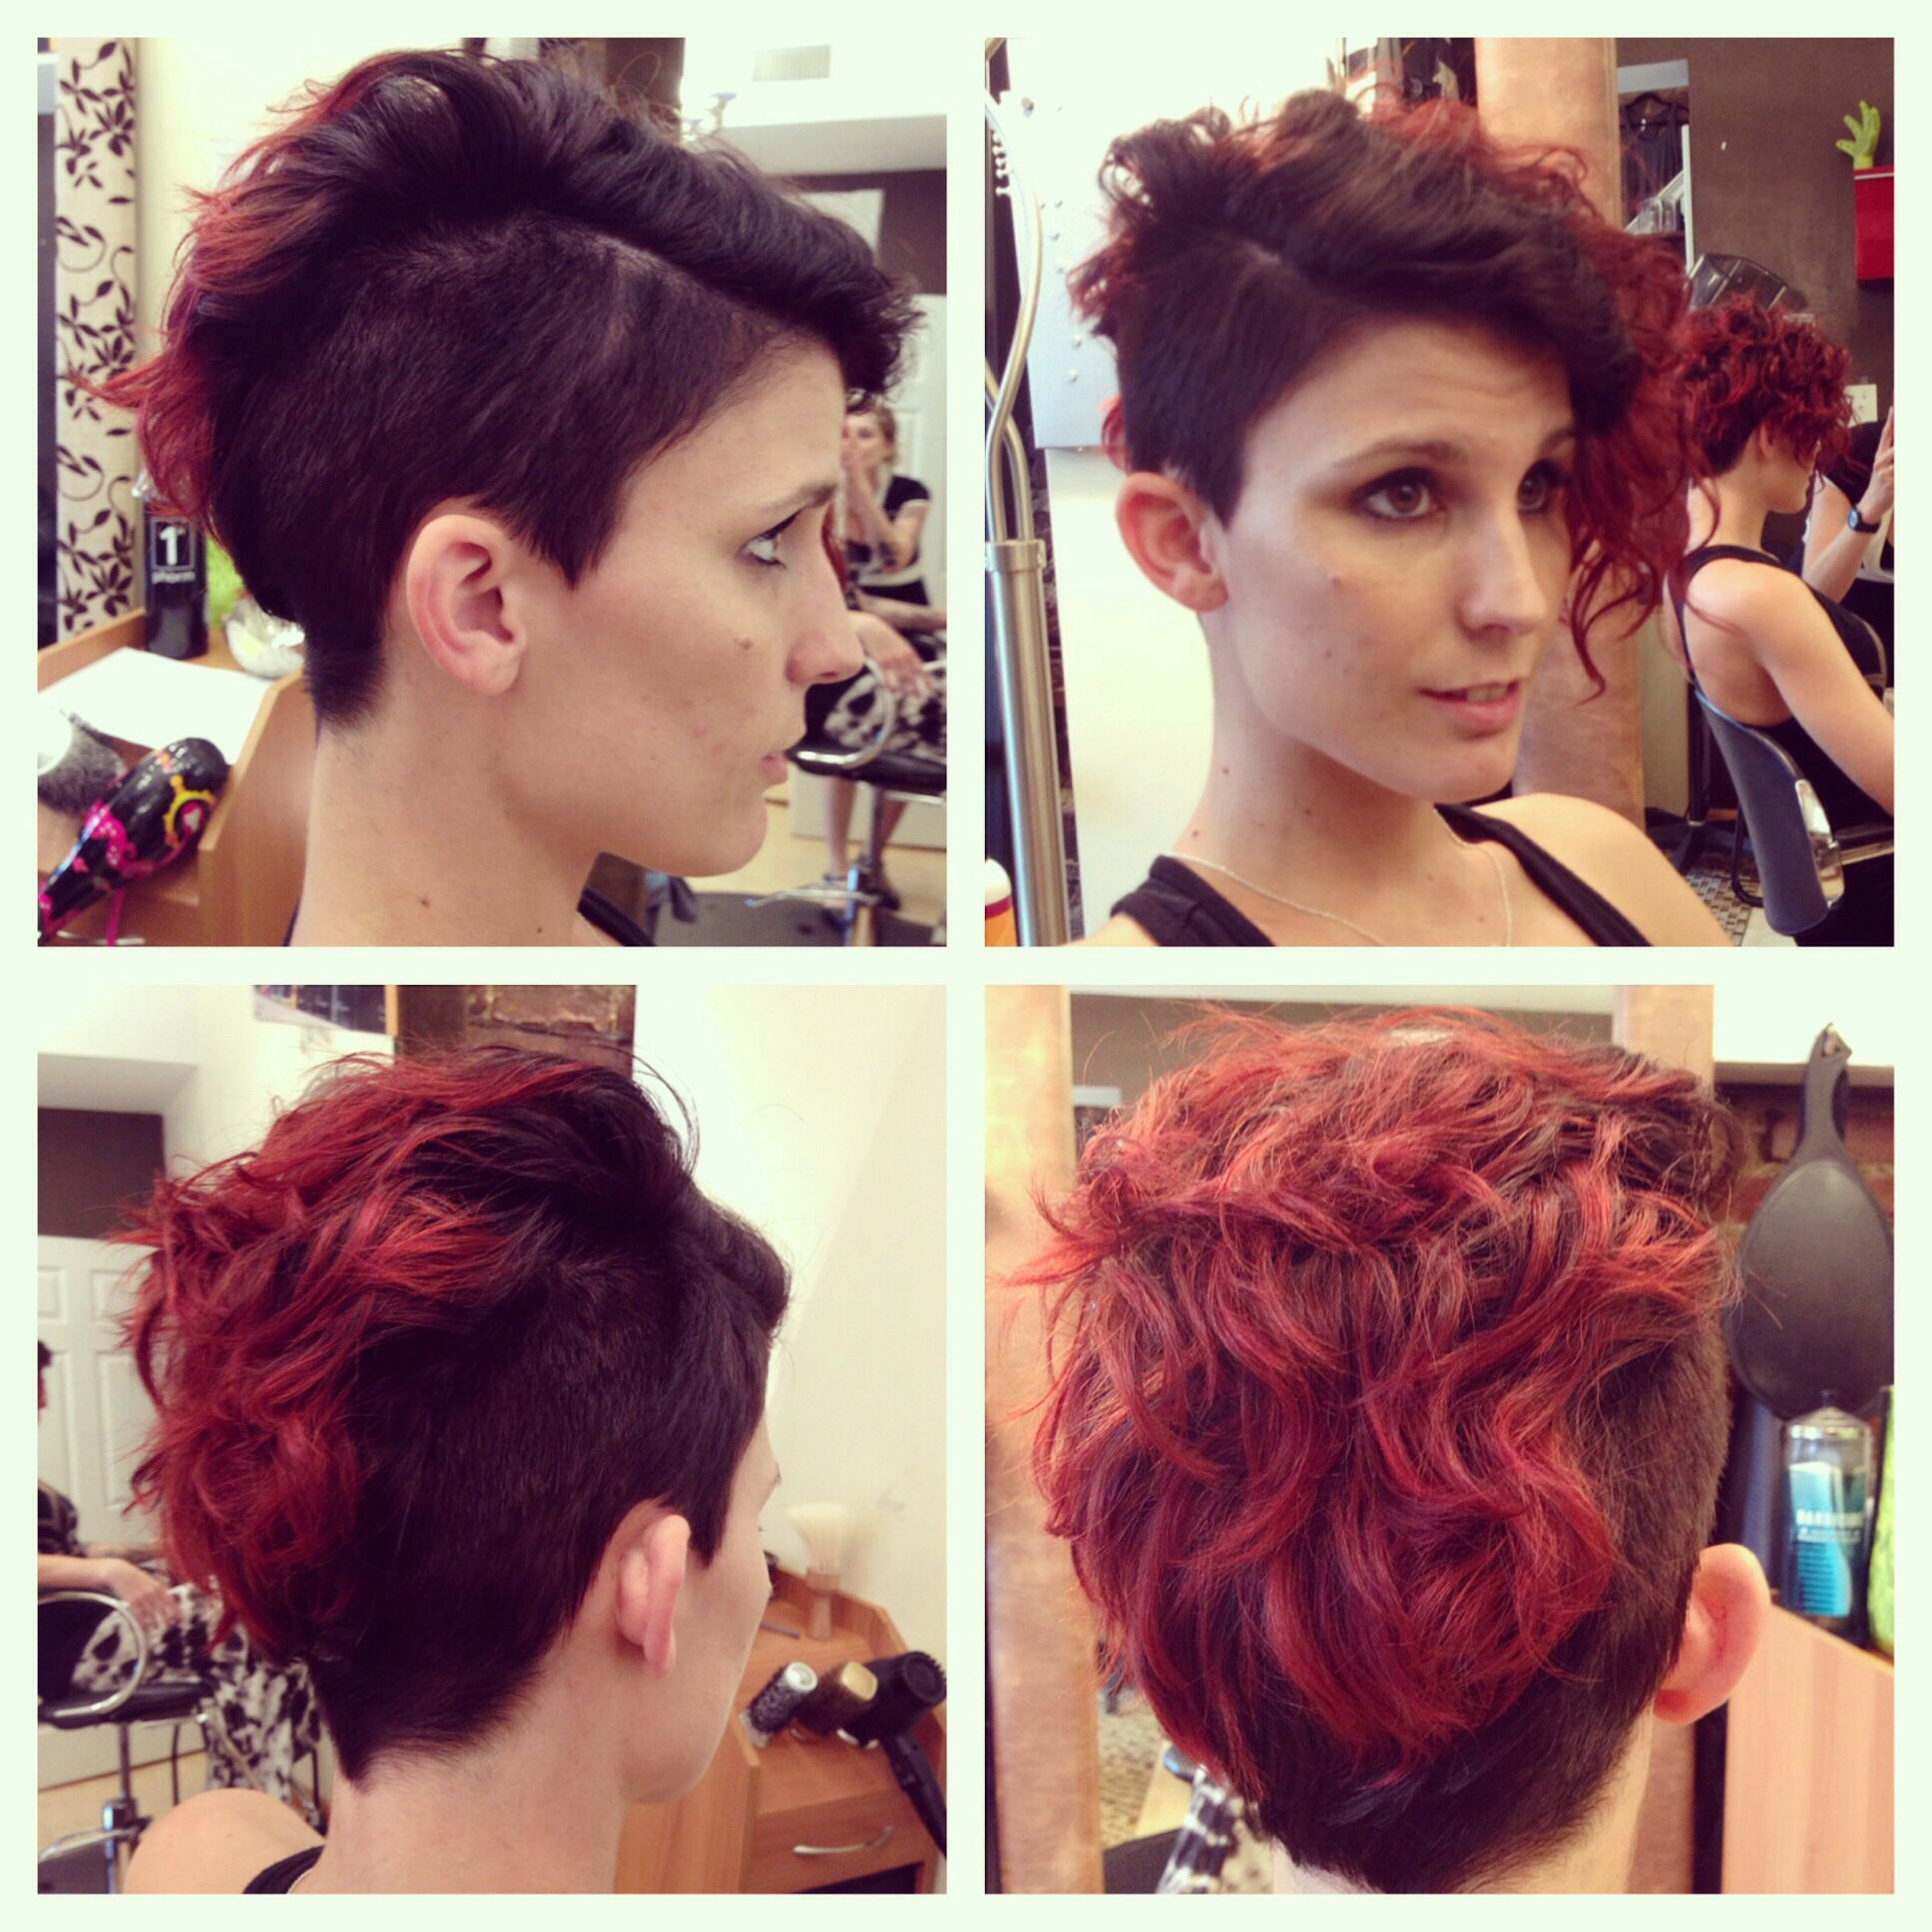 Undercut pixie cut shaved sides naturally curly pixie facebook